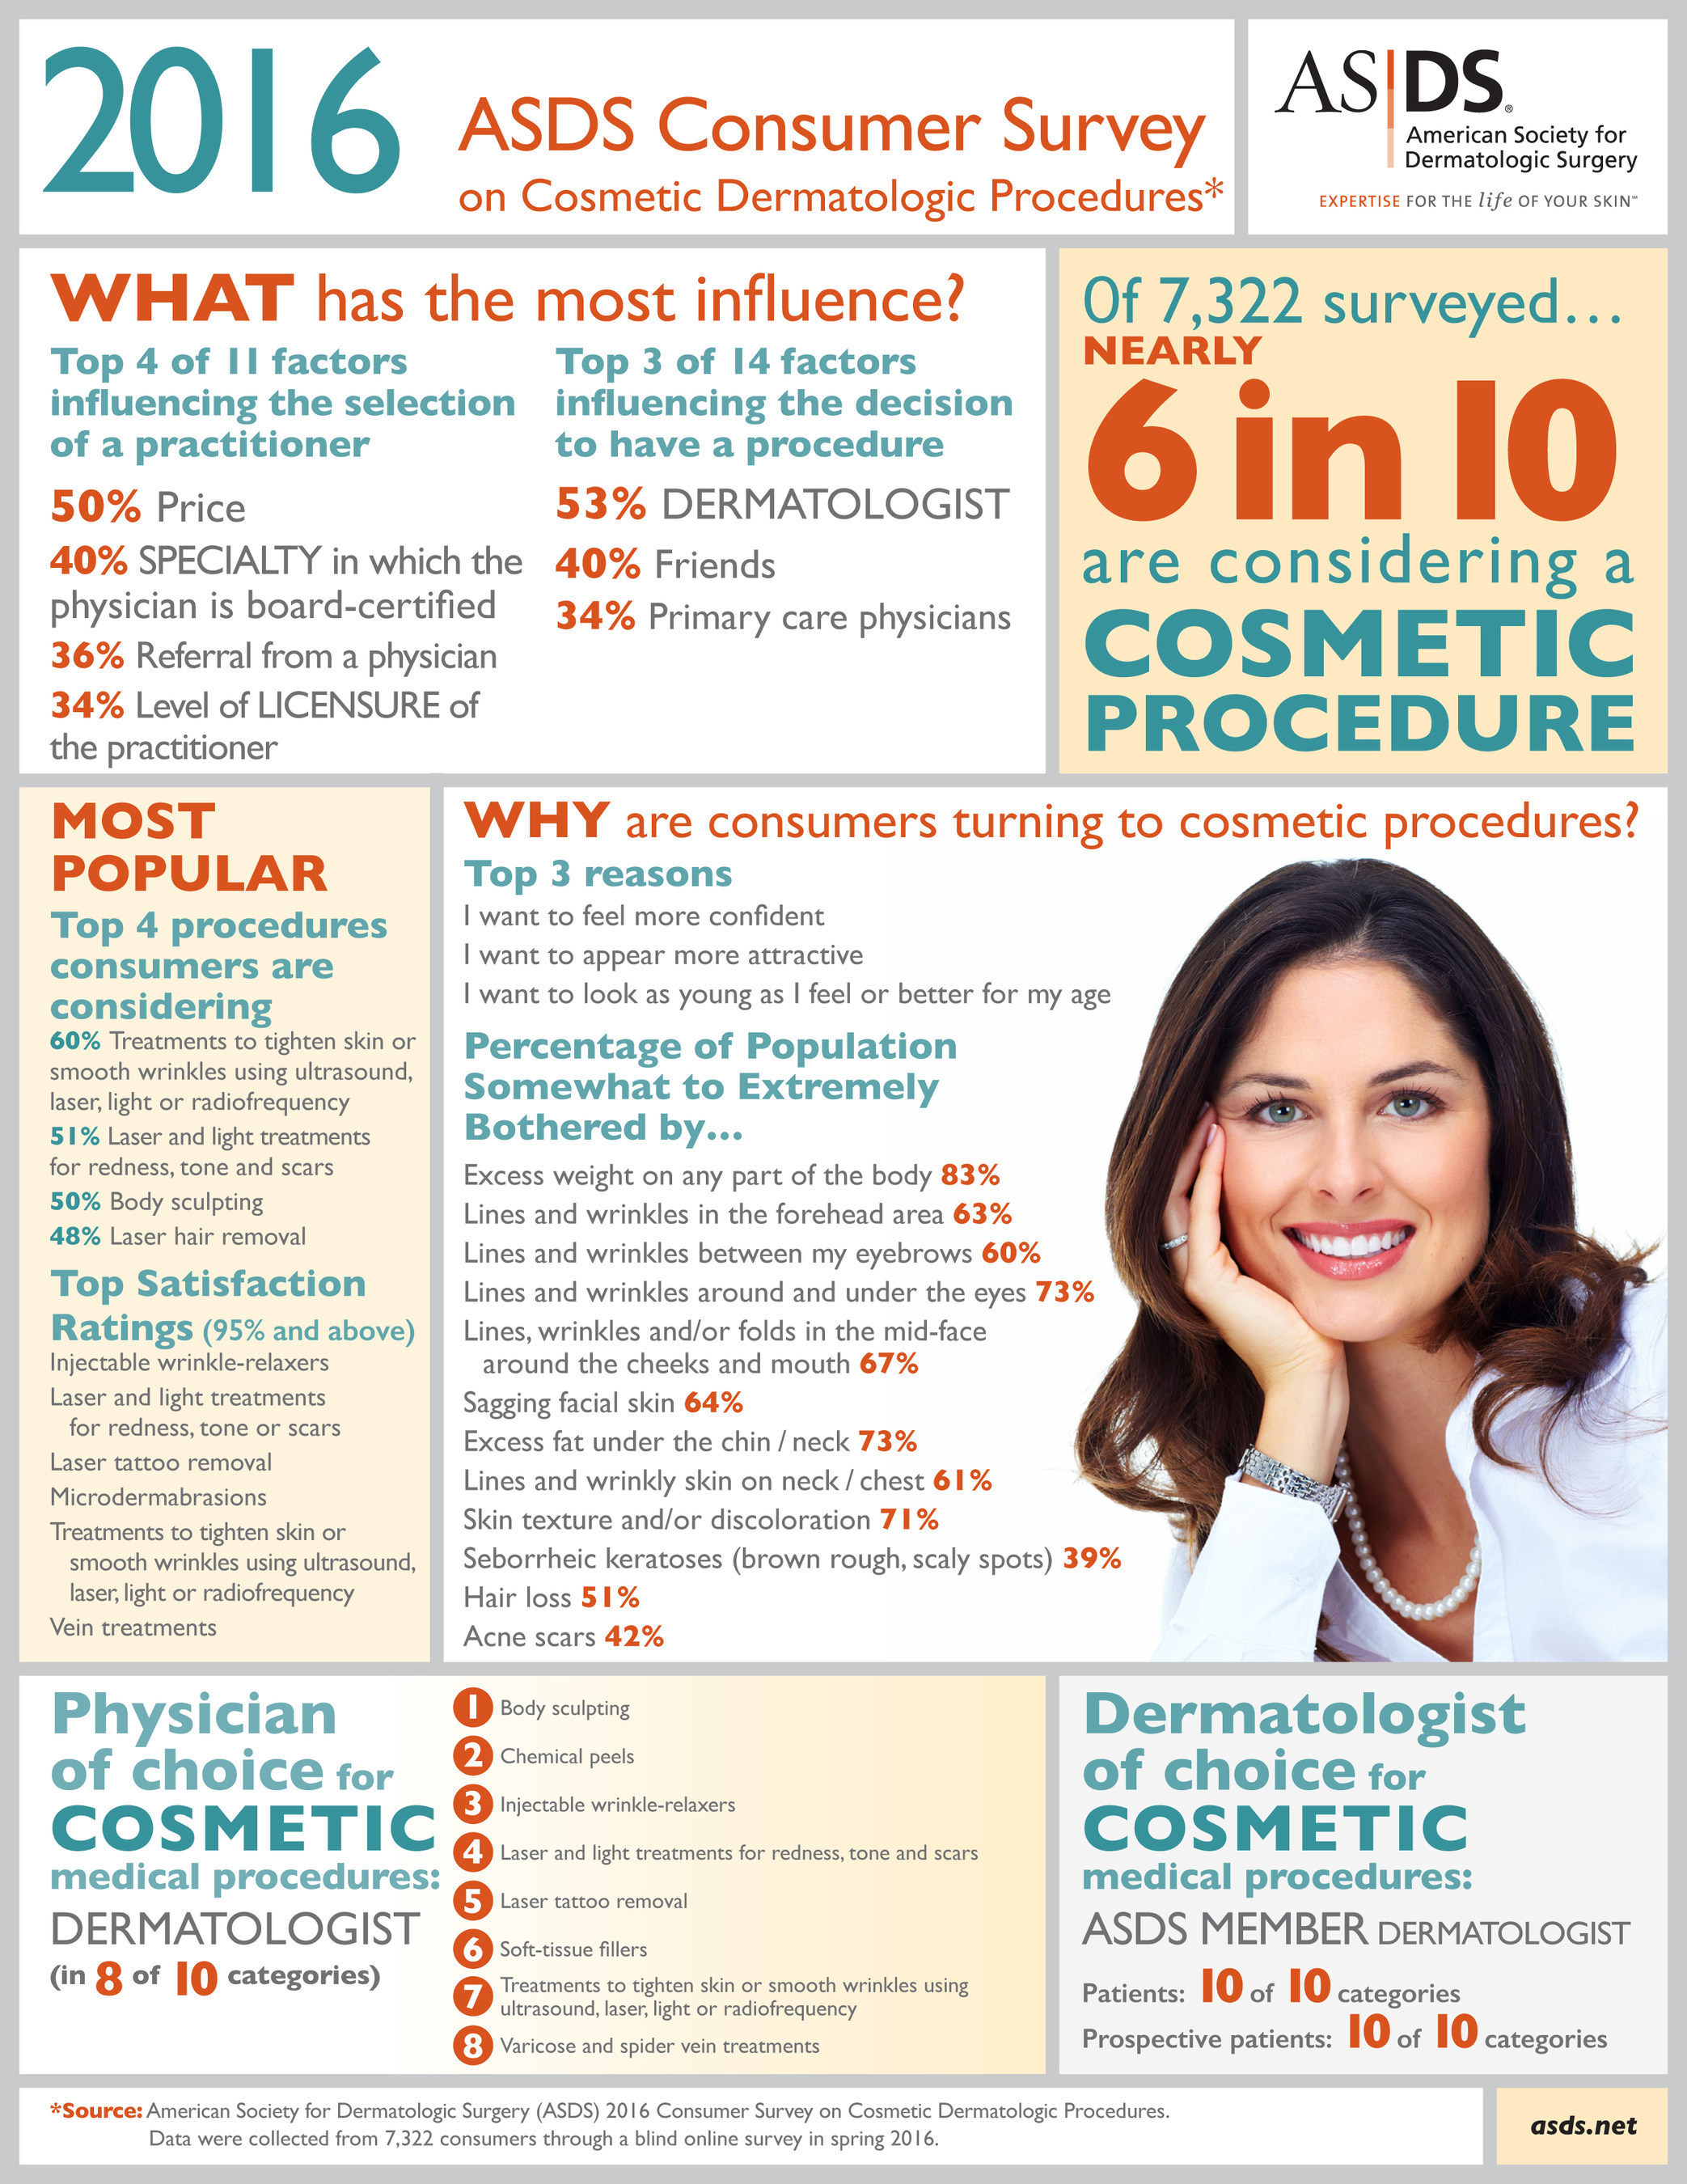 Nearly 60 percent of consumers now say they are considering a cosmetic treatment, up from 30 percent in 2013, according to the ASDS Consumer Survey on Cosmetic Dermatologic Procedures.